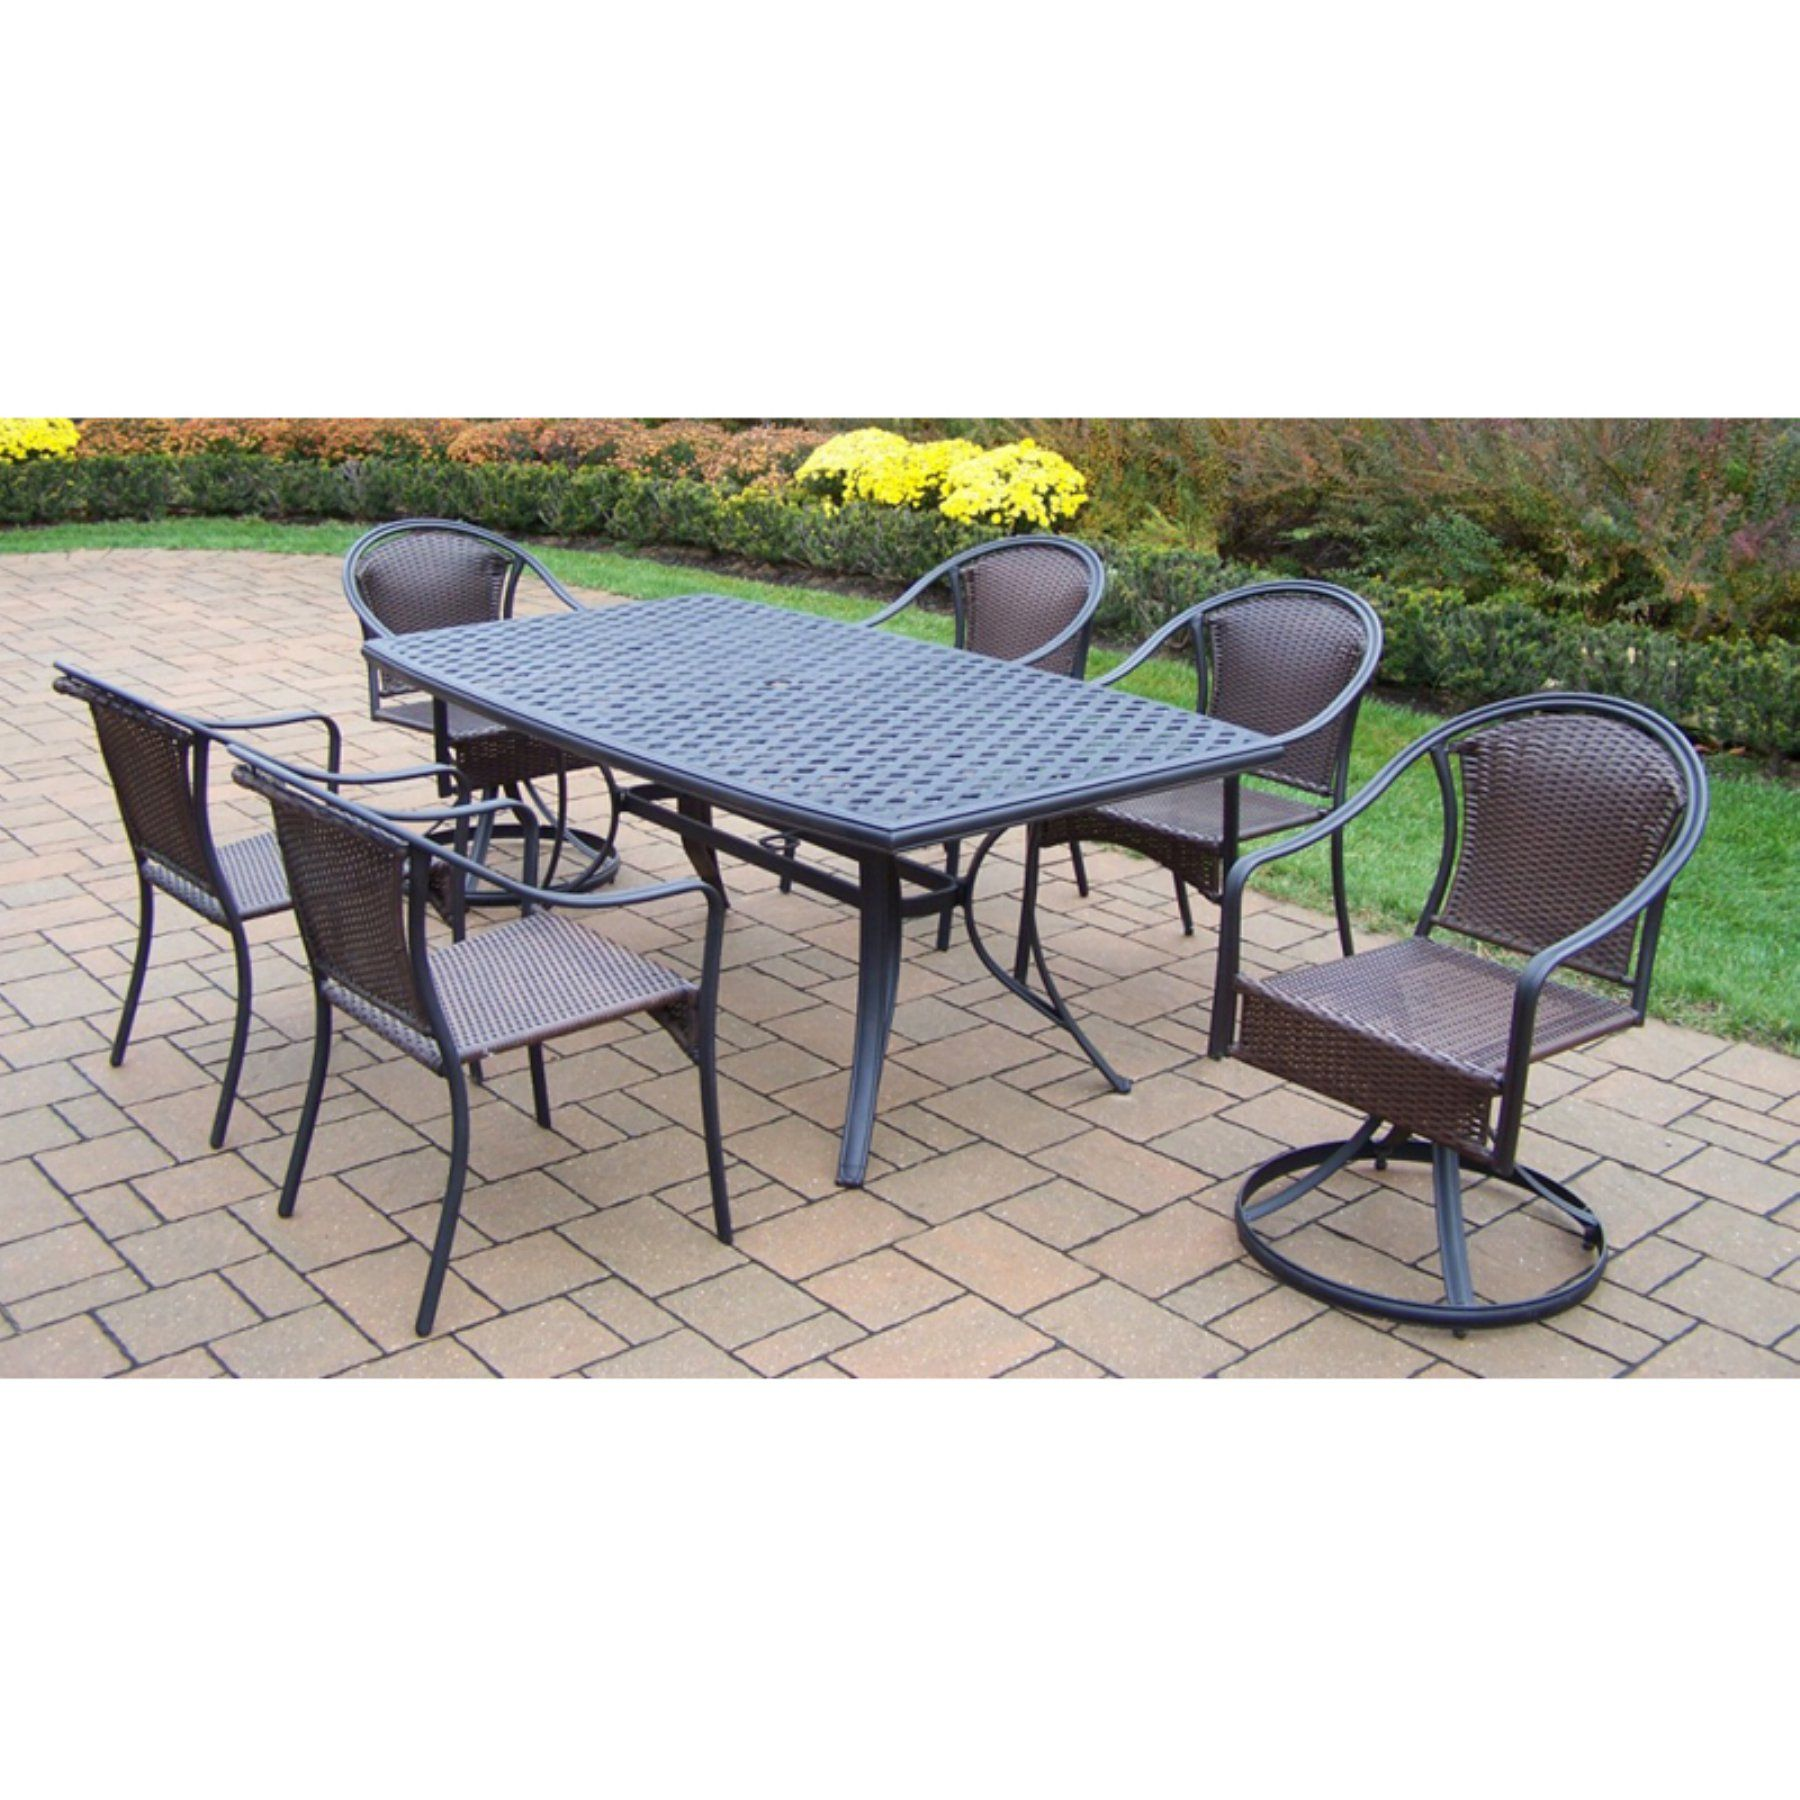 Outdoor Oakland Living Cascade 7 Piece Patio Dining Set with Boat